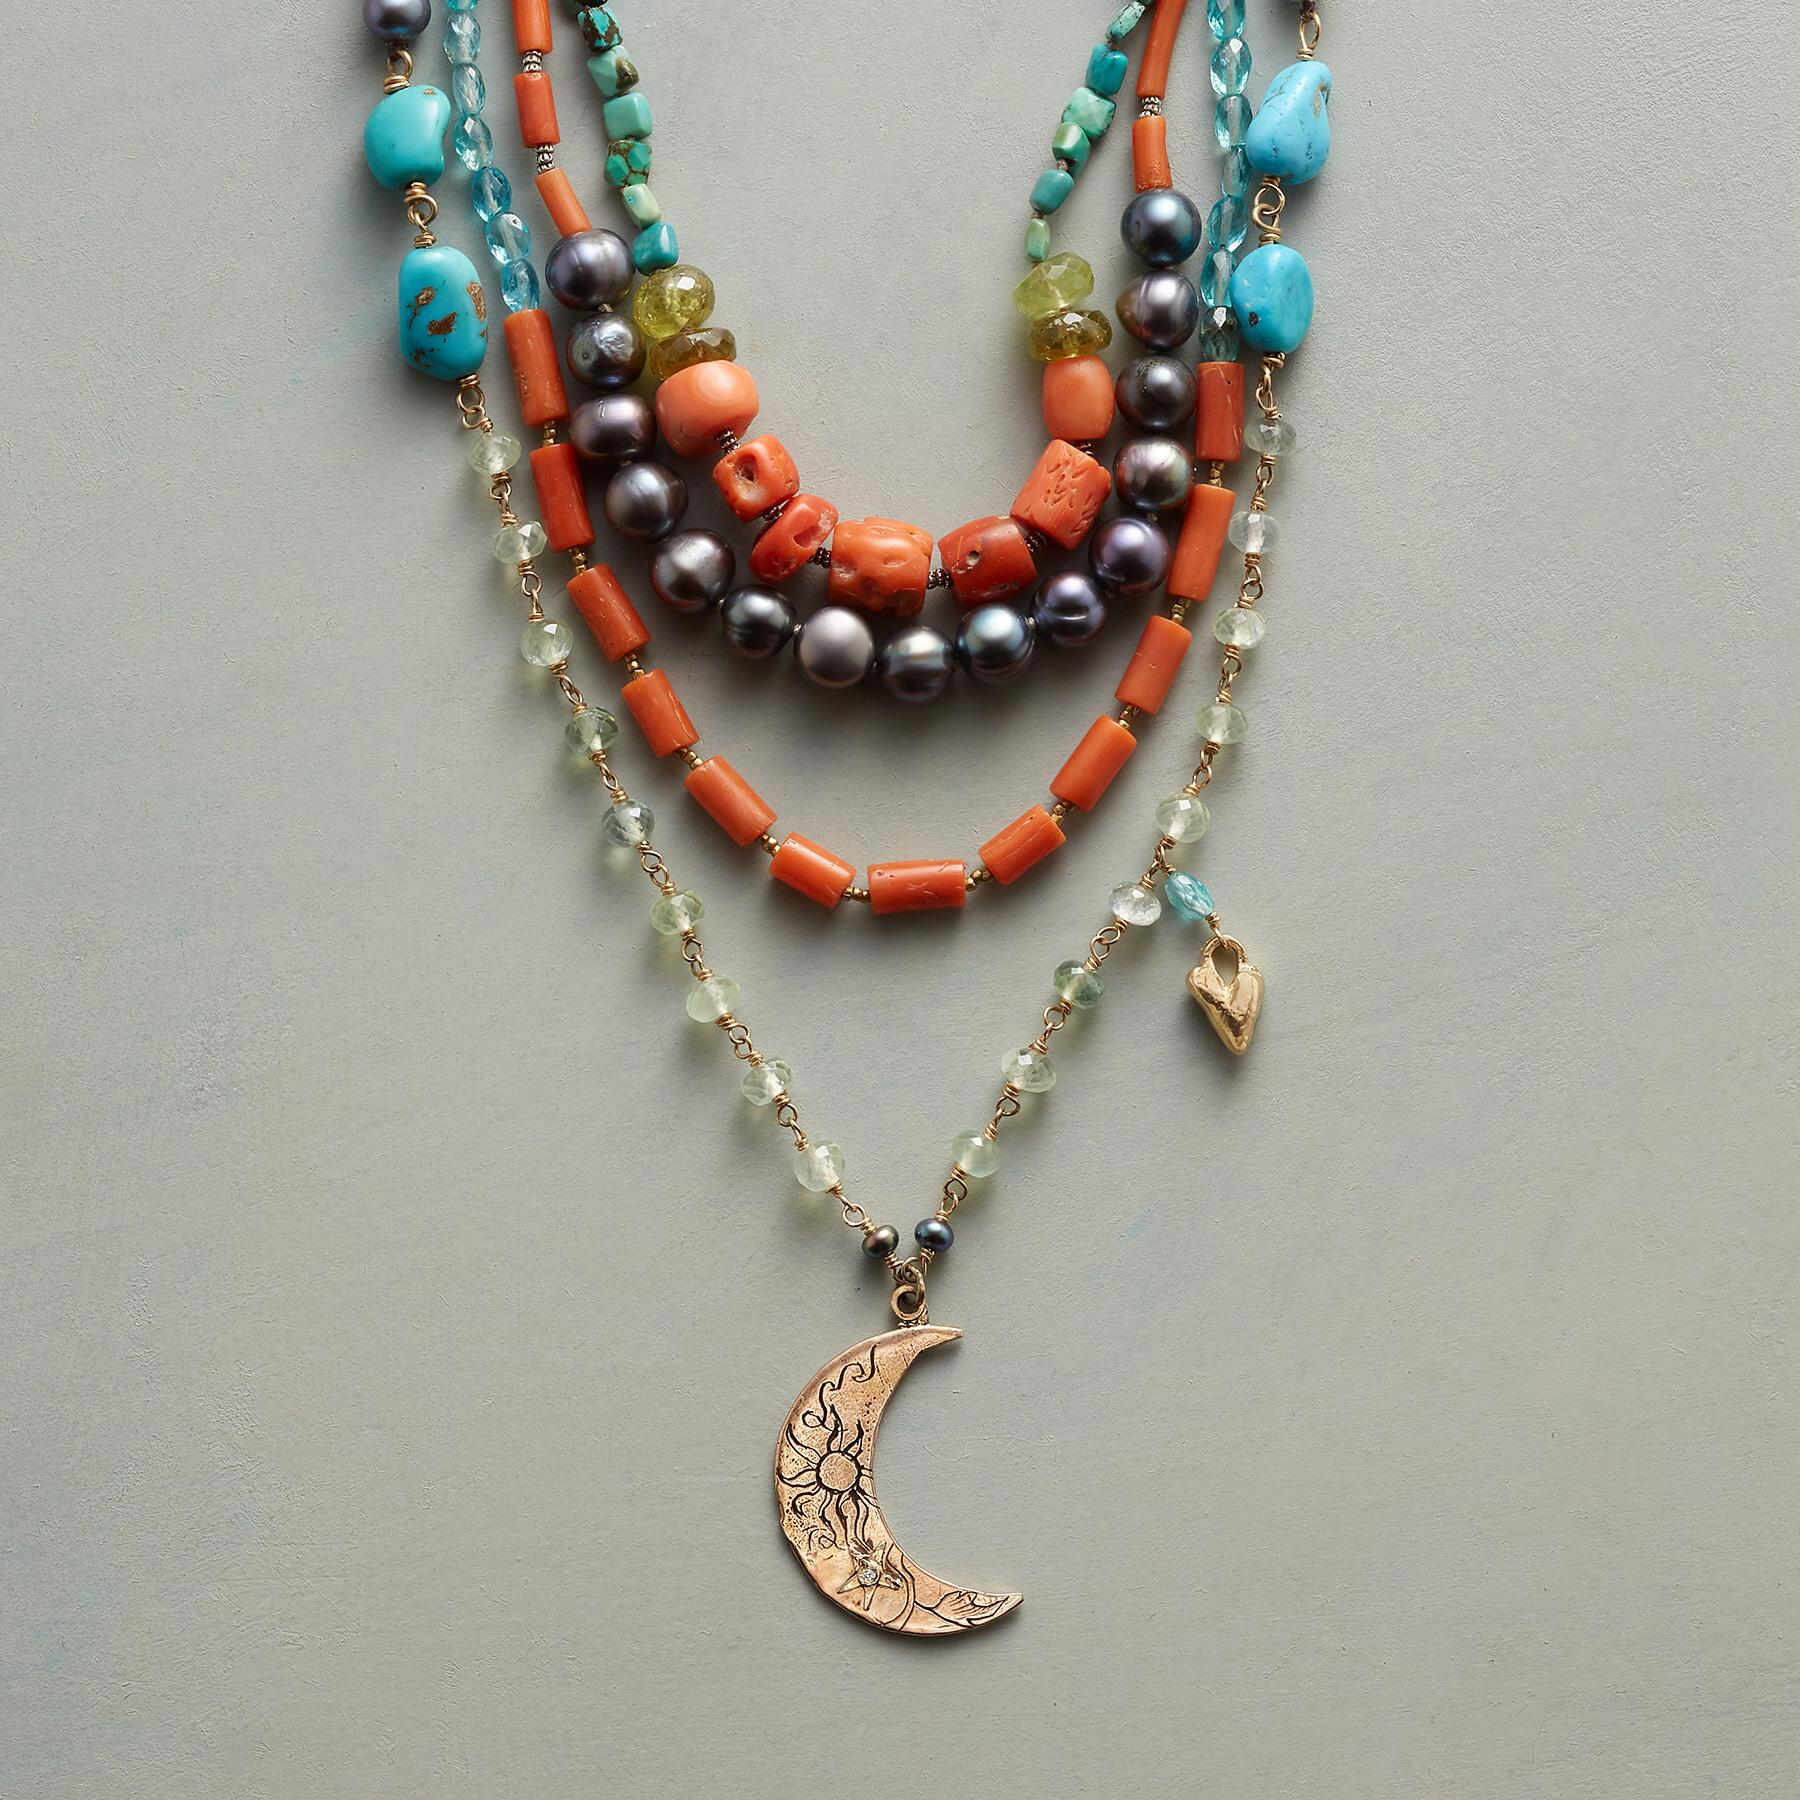 NEW MOON NECKLACE: View 1